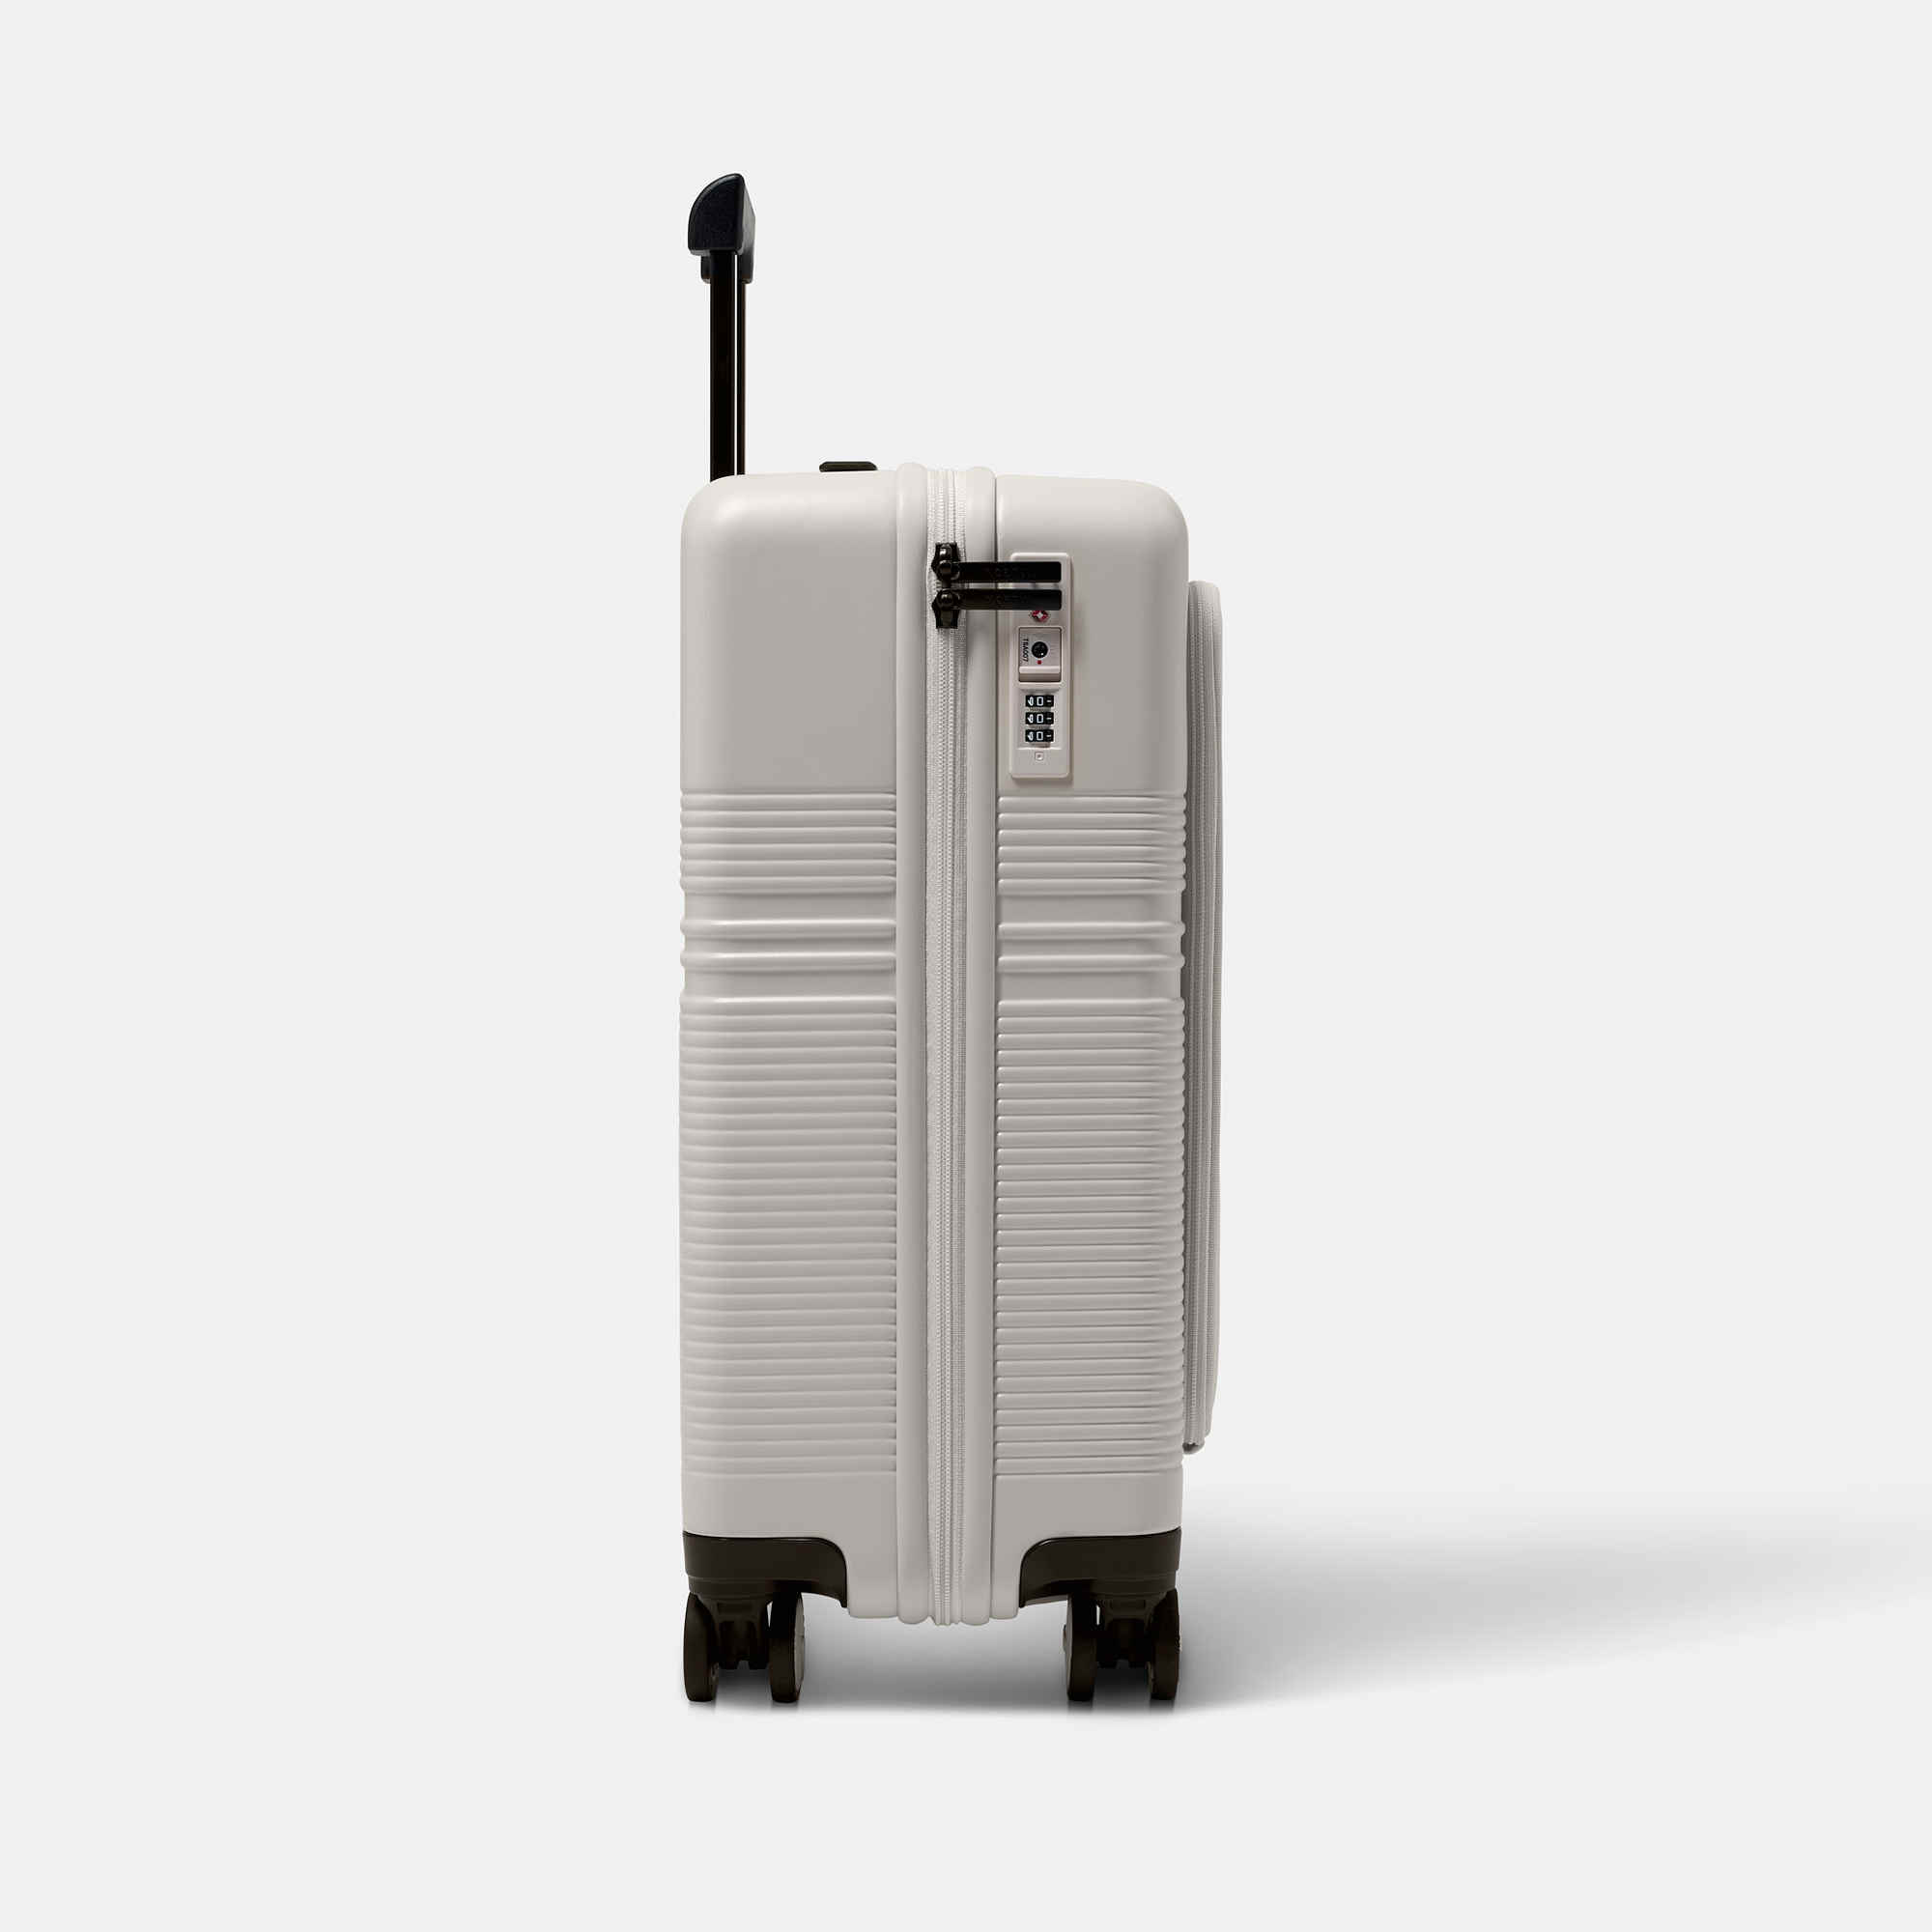 NORTVI sustainable design white suitcase with laptop compartment made of durable material. Perfect travel trolley to use as hand luggage.